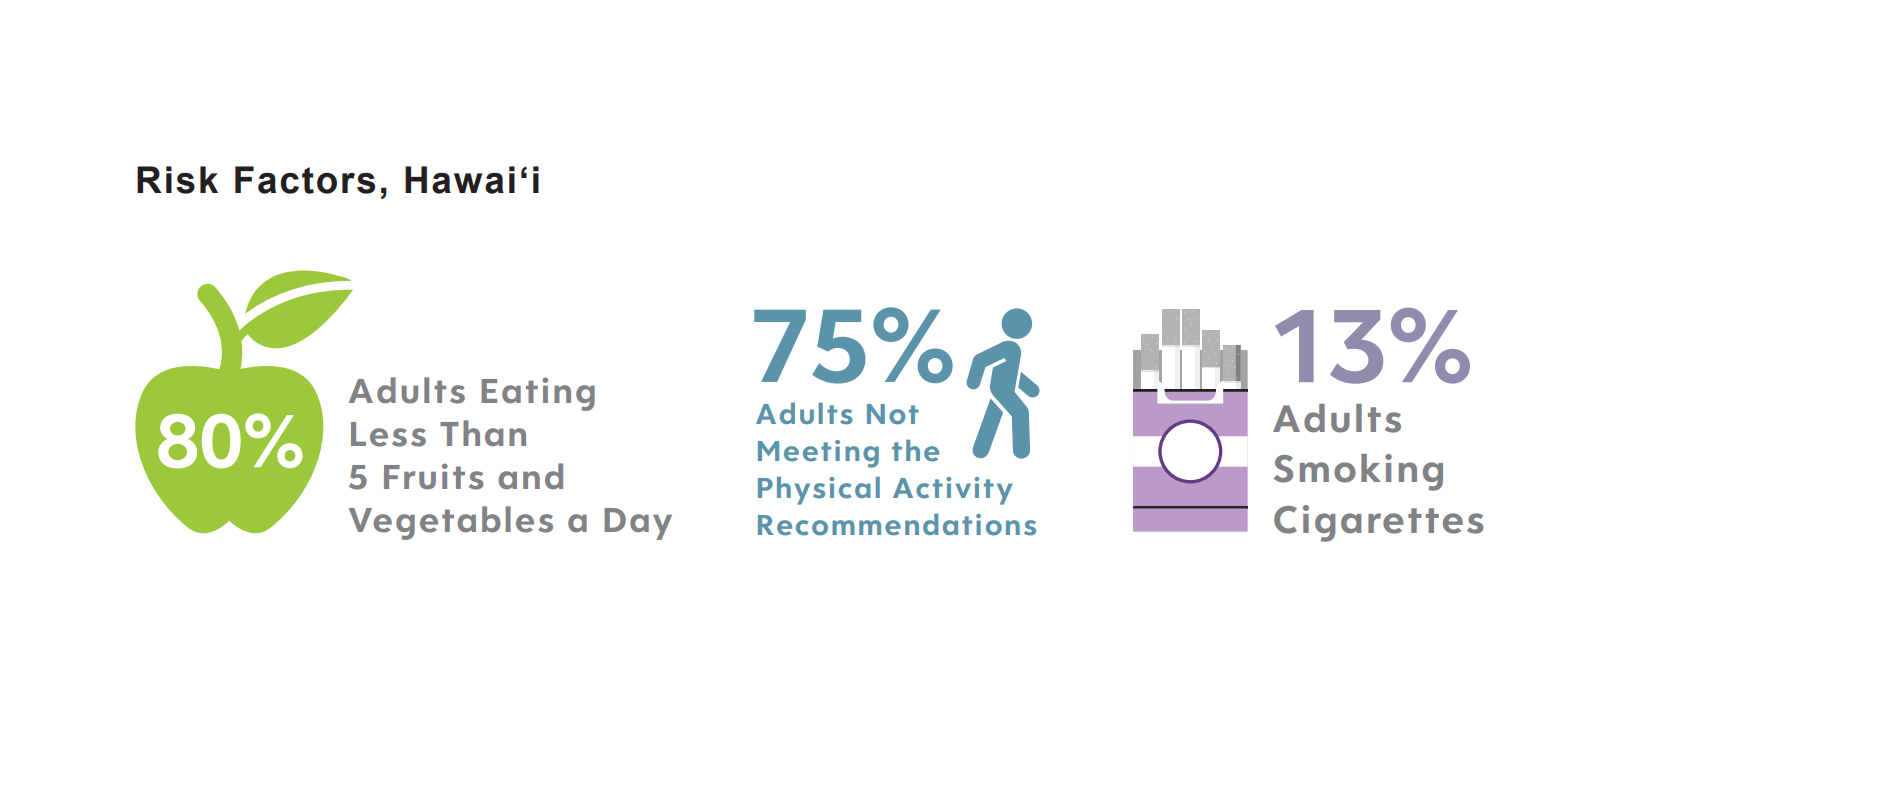 Risk Factors Hawaii 80% Adults Eating Less than 5 Fruits and Vegetables a Day 75% Adults Not Meeting the Physical Activity Recommendations 13% Adults Smoking Cigarettes